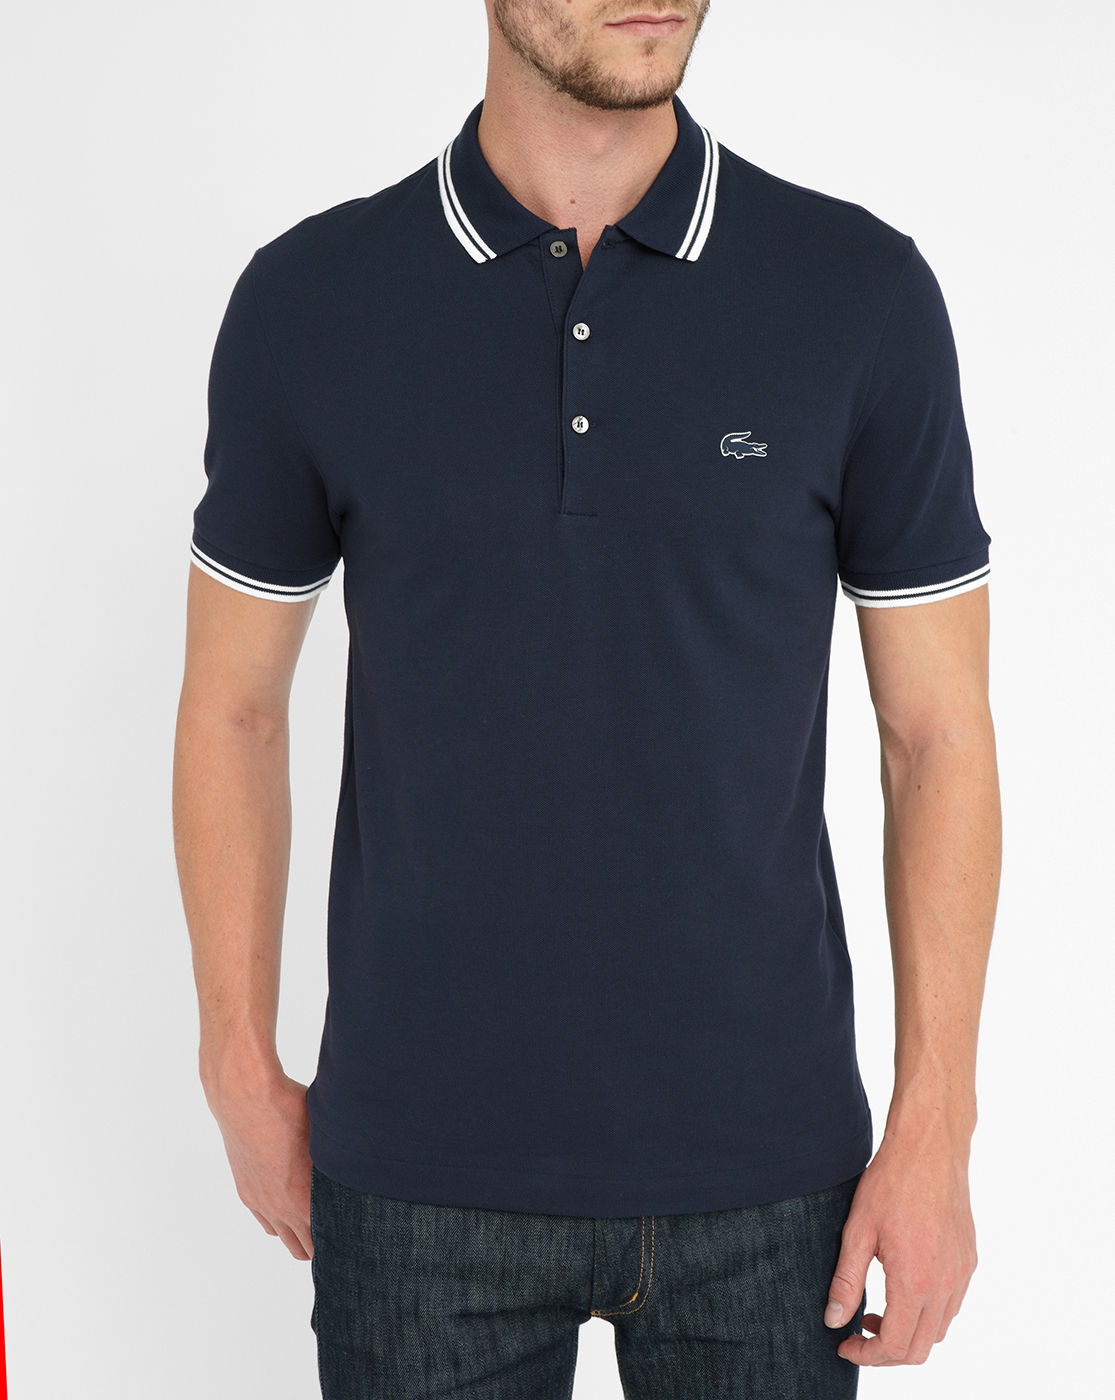 lacoste navy short sleeve white trim slim fit polo shirt. Black Bedroom Furniture Sets. Home Design Ideas